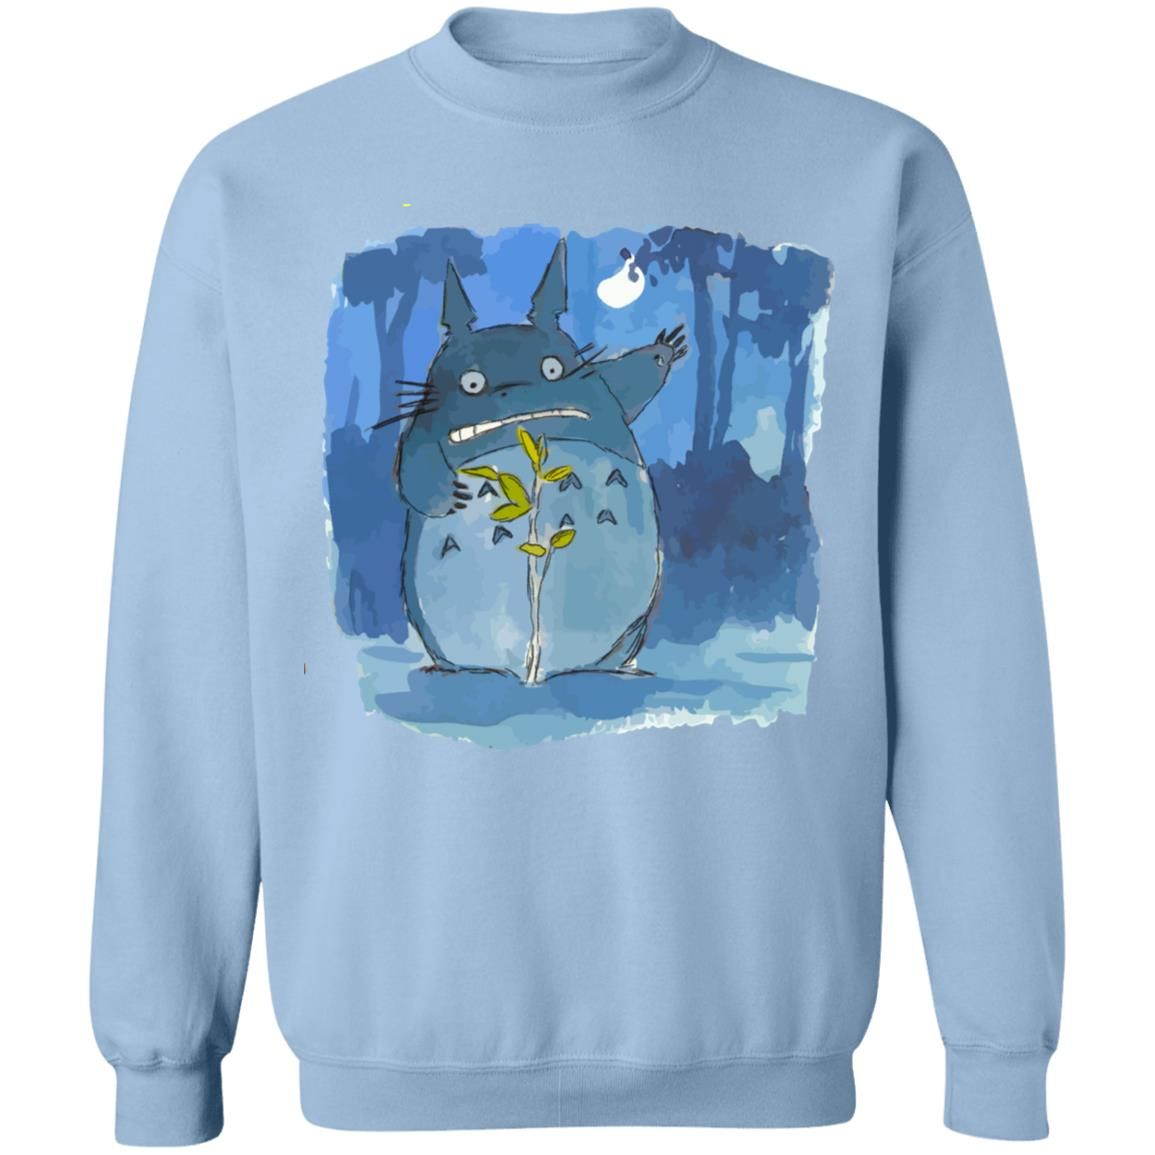 My Neighbor Totoro – Midnight Planting Sweatshirt Unisex